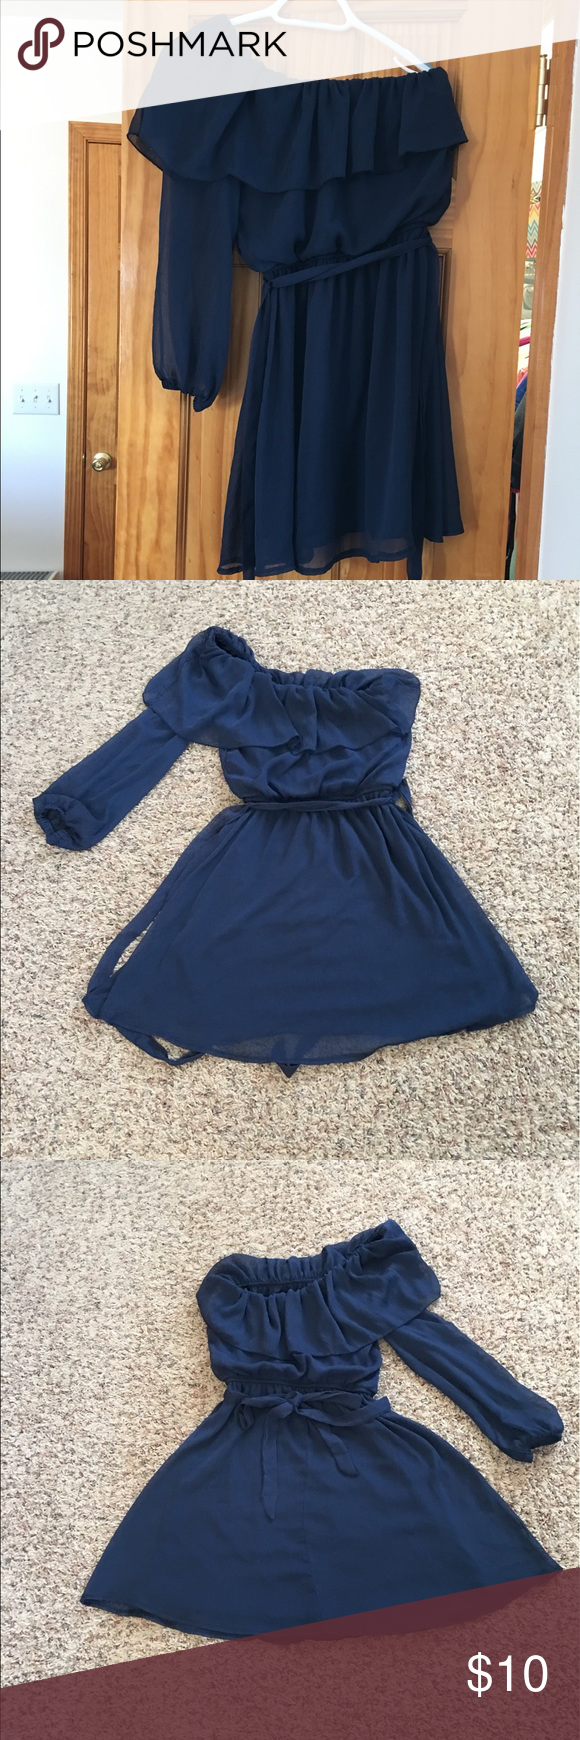 Wet Seal Dress Wet Seal One Shoulder Dress. Comes above the knee, has the belt you can tie in a bow. Navy, only worn a couple times Wet Seal Dresses One Shoulder